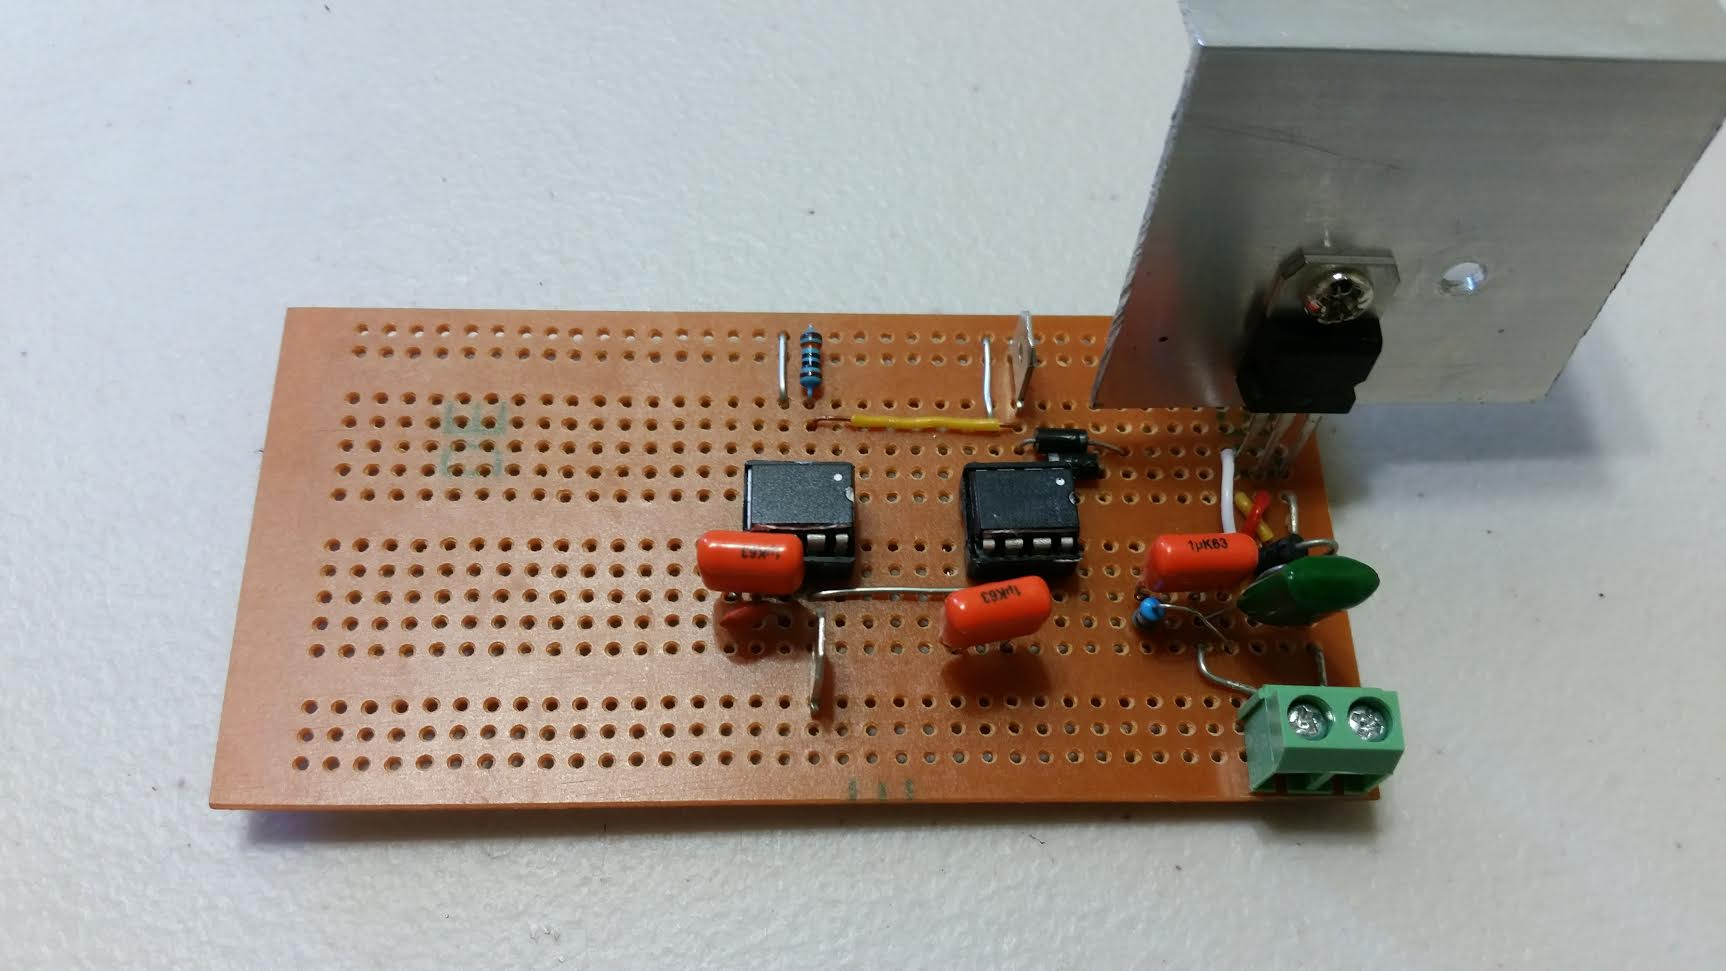 My First Tesla Coil Mosfet Version Silicon Junction Testing Circuit Here I Used Dual Drivers In Parallel As Only Had 15a Available And They Ran Hot On Their Own